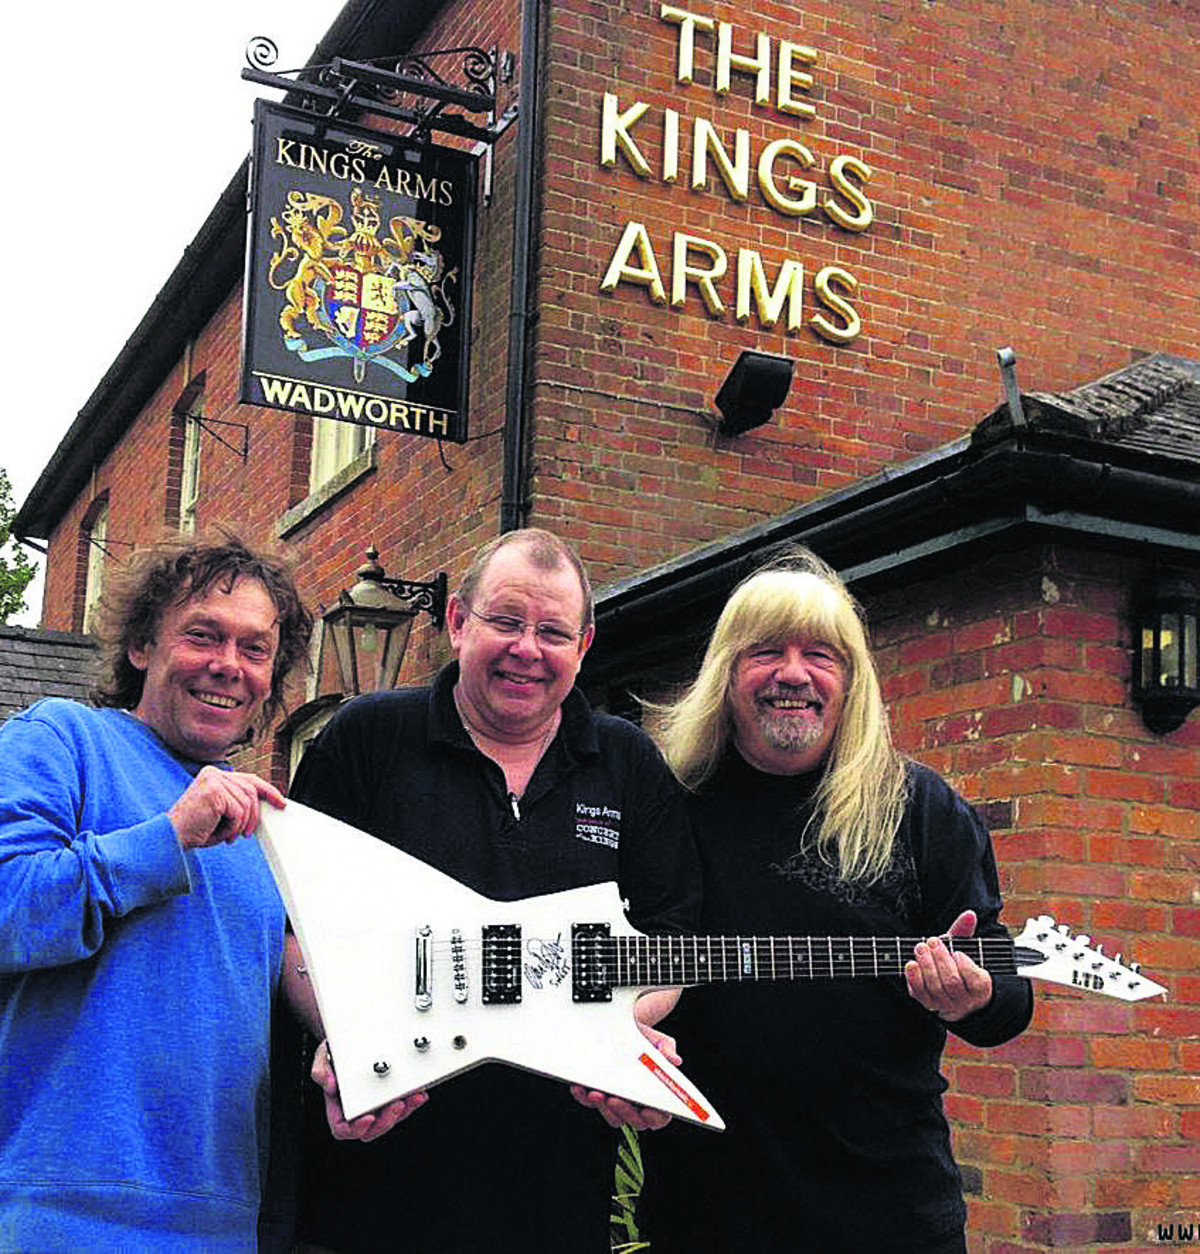 Hopes of sell-out and good weather for All Cannings' Concert at the Kings